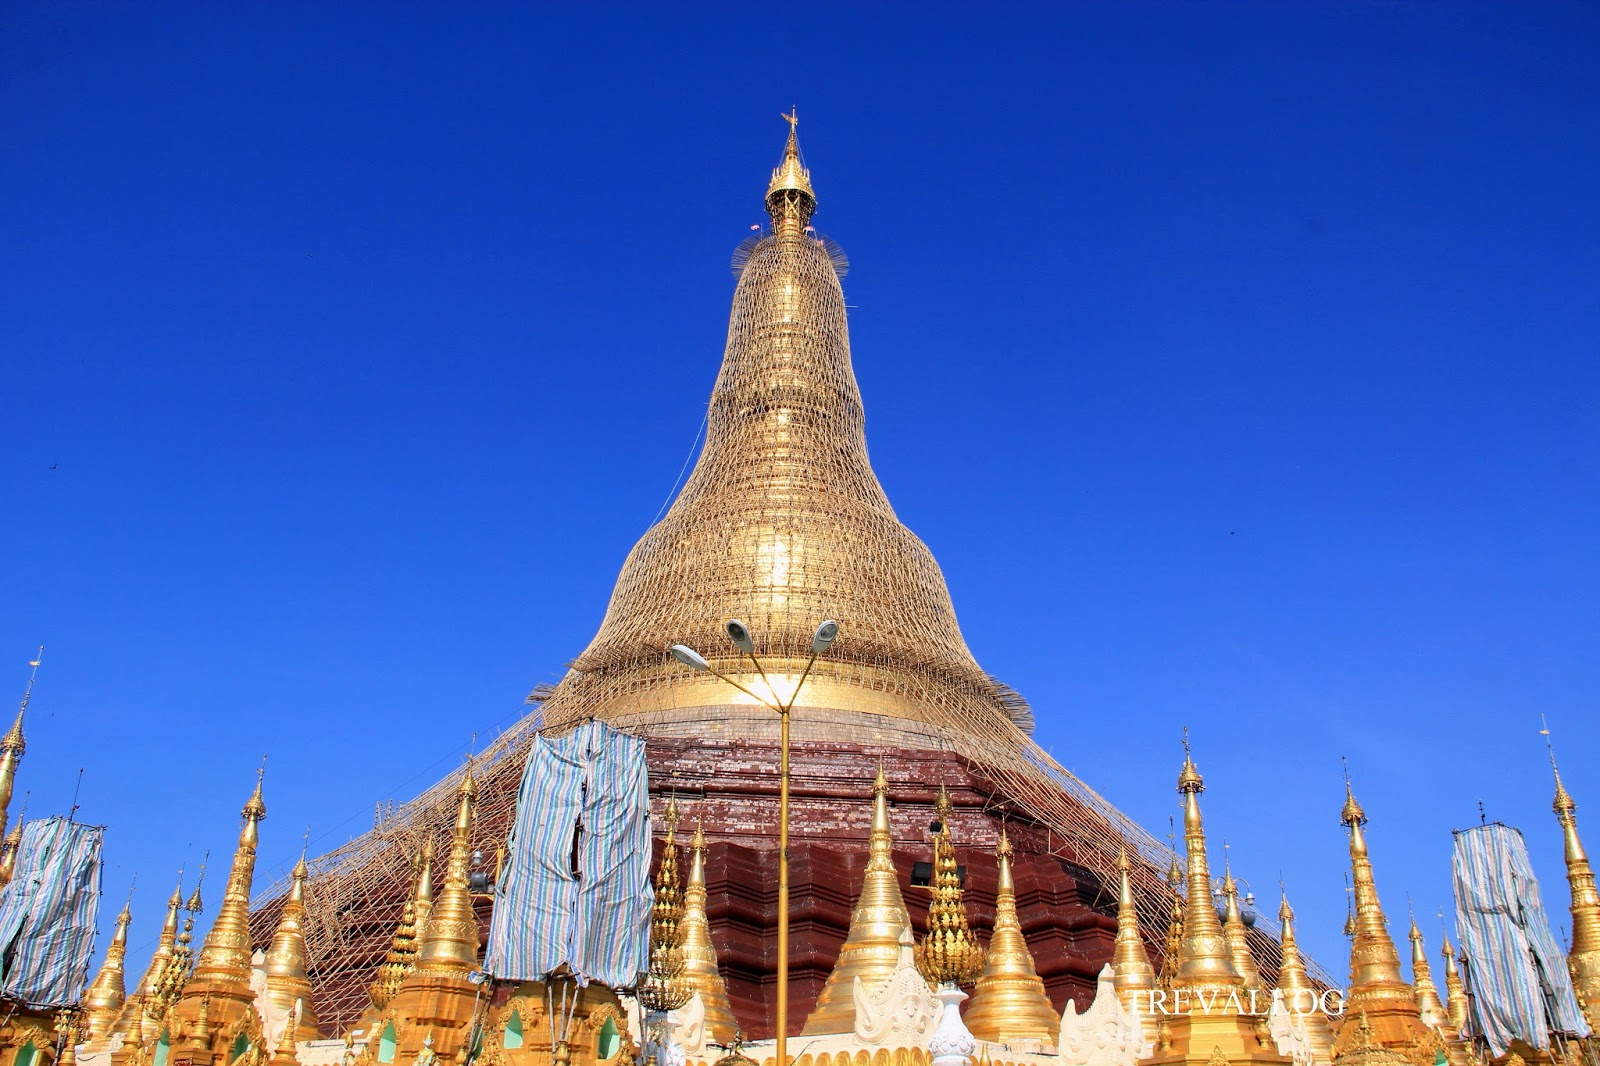 Shwedagon Pagoda under restoration